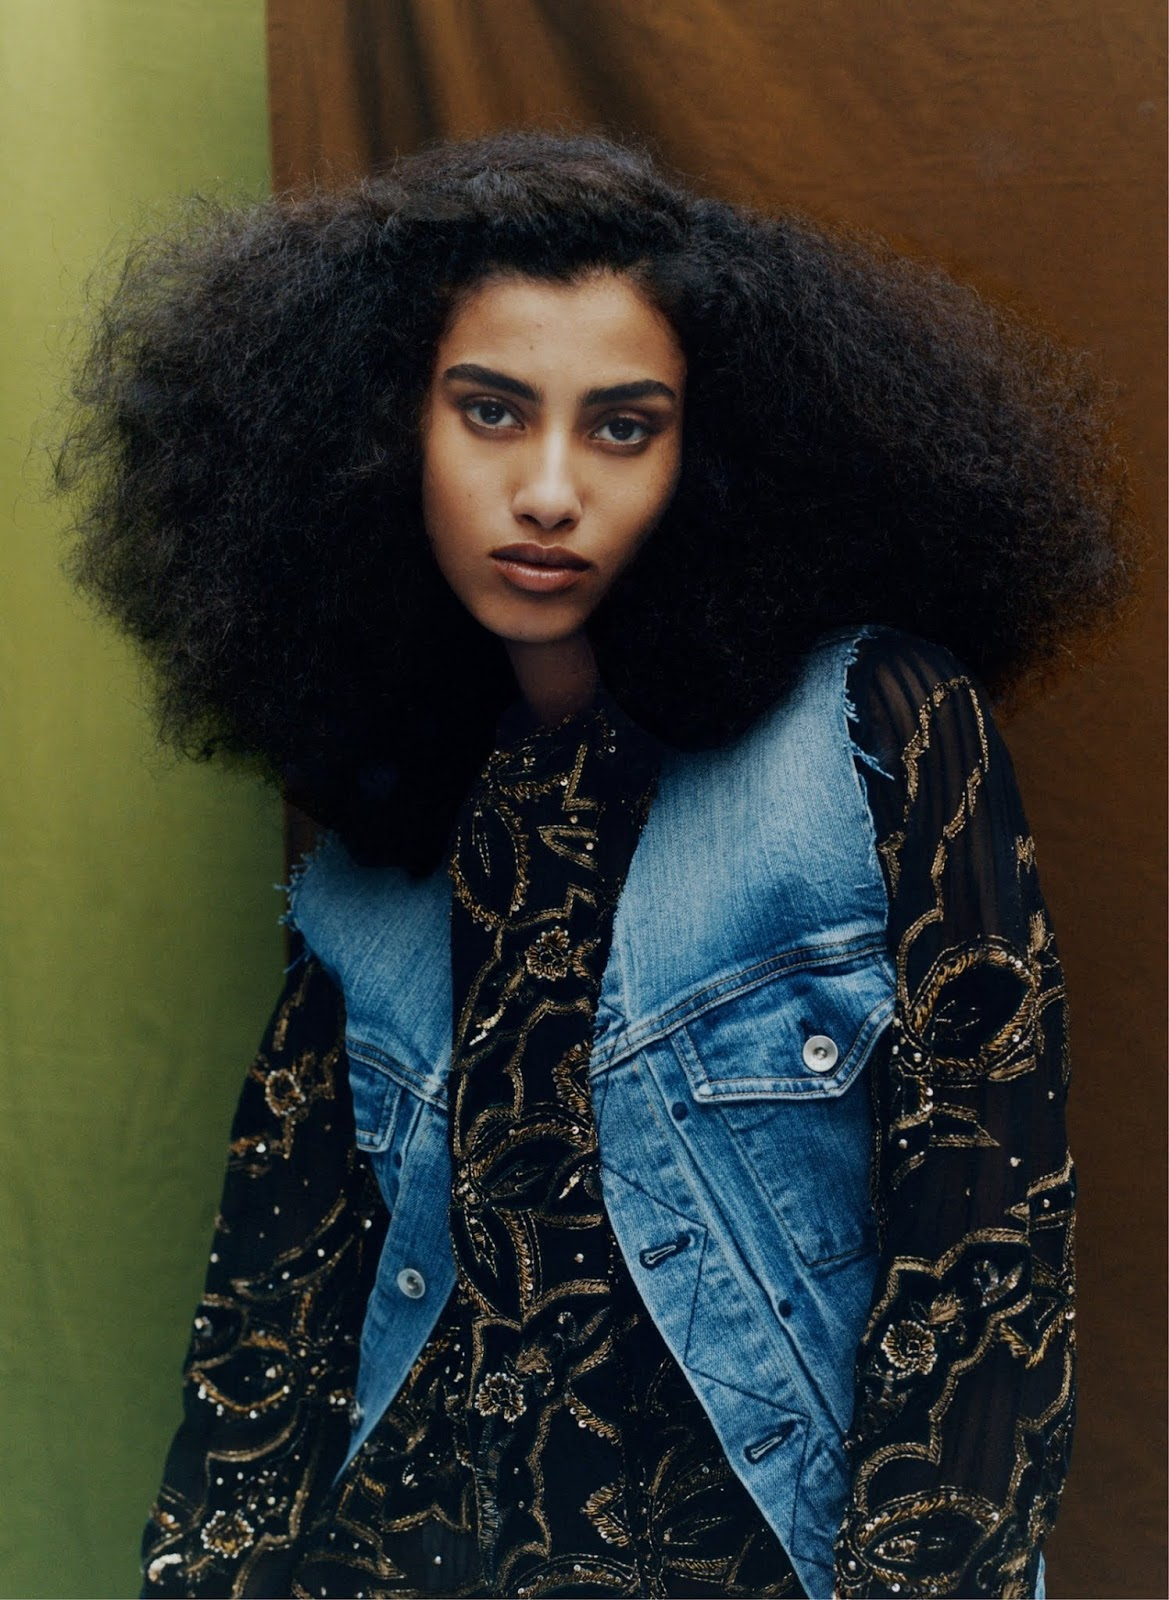 Imaan Hammam - Rag & Bone vest. Saint Laurent by Anthony Vaccarello dress.